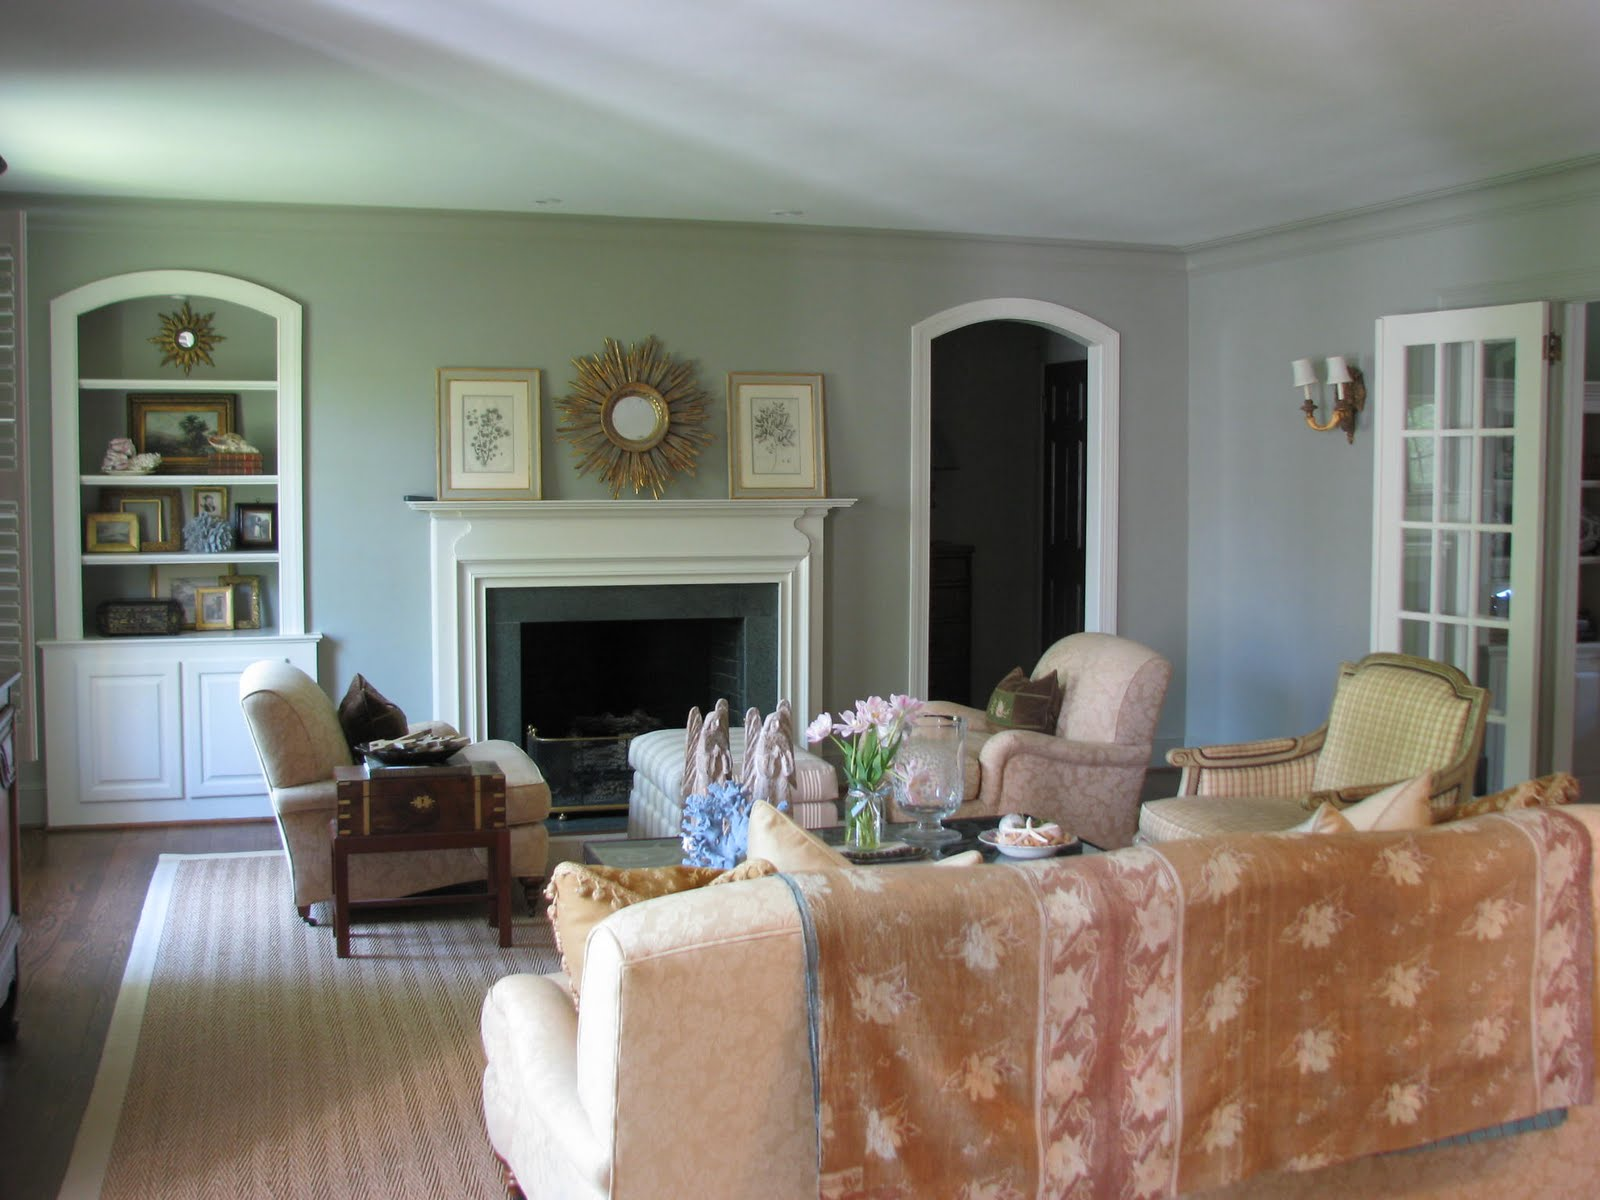 gray and taupe living room wall paint colors for small guest bath re-do | garden, home & party